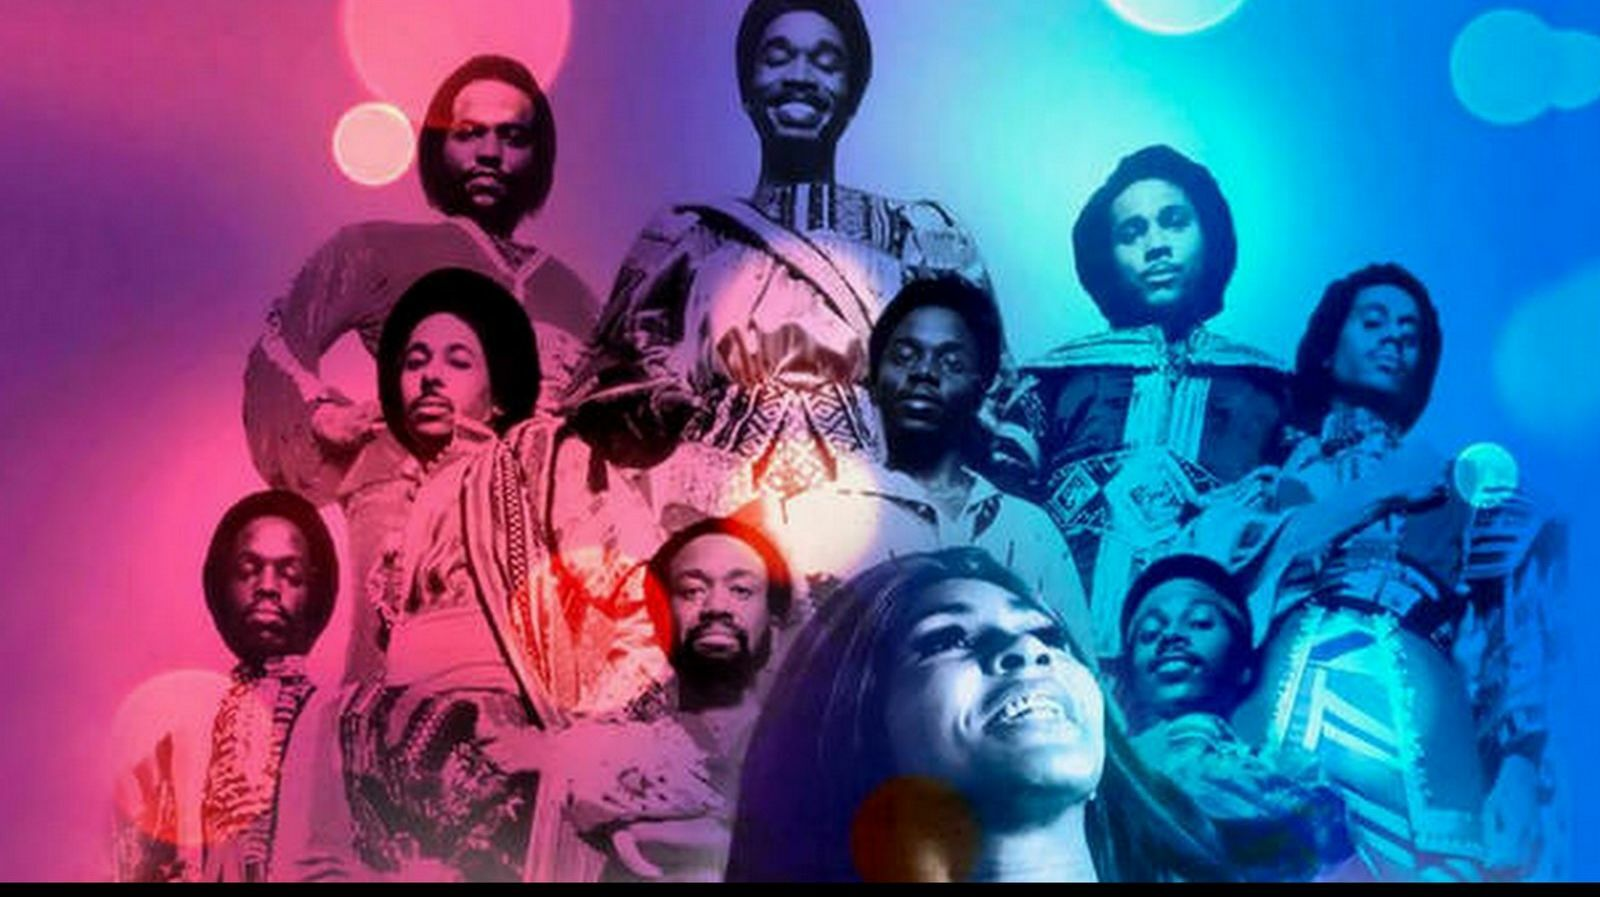 The Music of Tina Turner & Earth, Wind & Fire